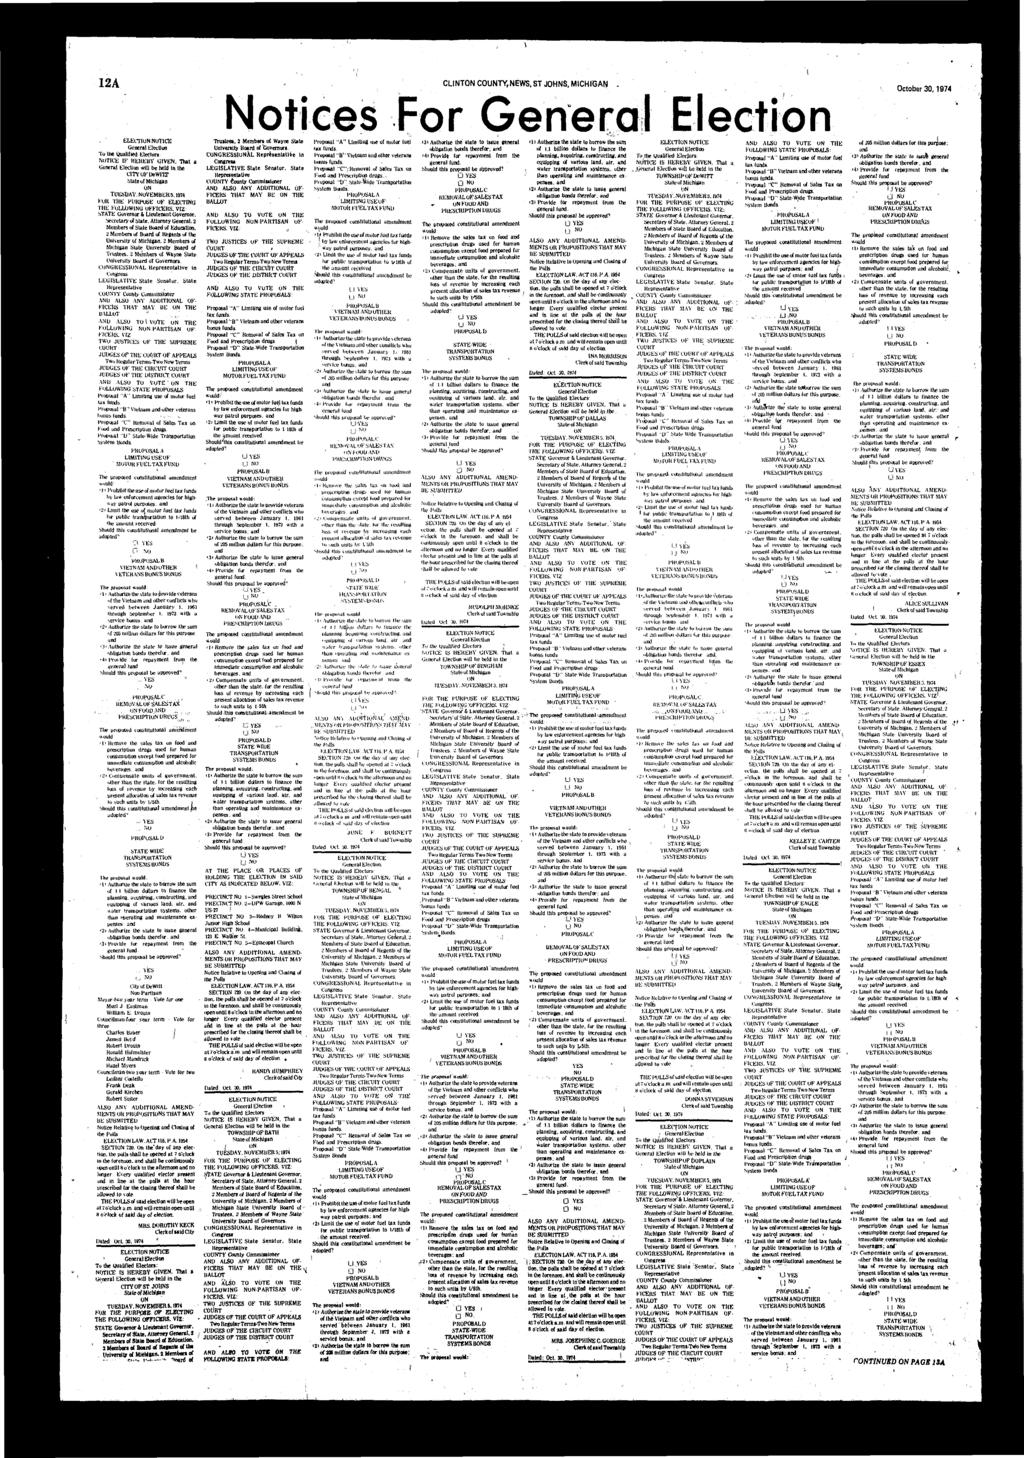 12A CLINTON COUNTY,NEWS, ST JOHNS, MICHIGAN Notices For Gene October 30,1974 ELECTION NuTlCE To Ihe Qulified Electors NOTICE IF HEREBY GIVEN, Tht will be held in the cityoiruewnr Stte of Michign UN